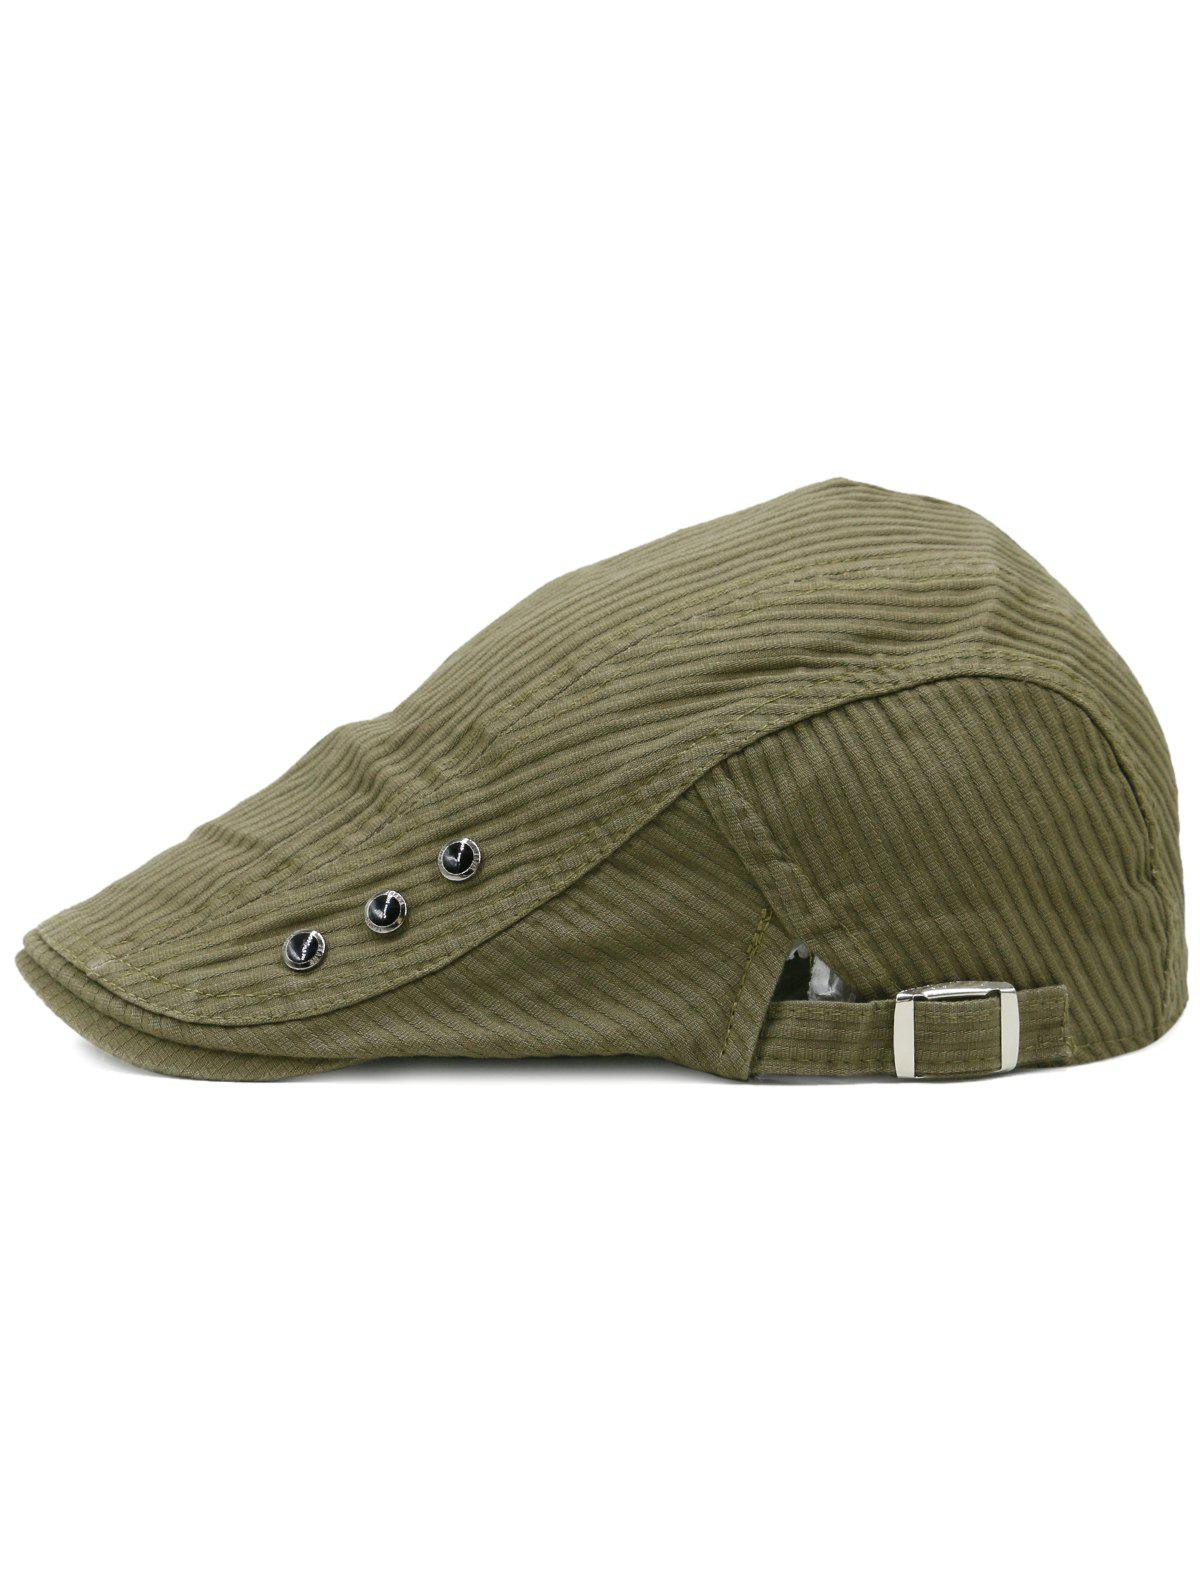 Striped Pattern Rivets Adjustable Cabbie Hat - CAMOUFLAGE GREEN